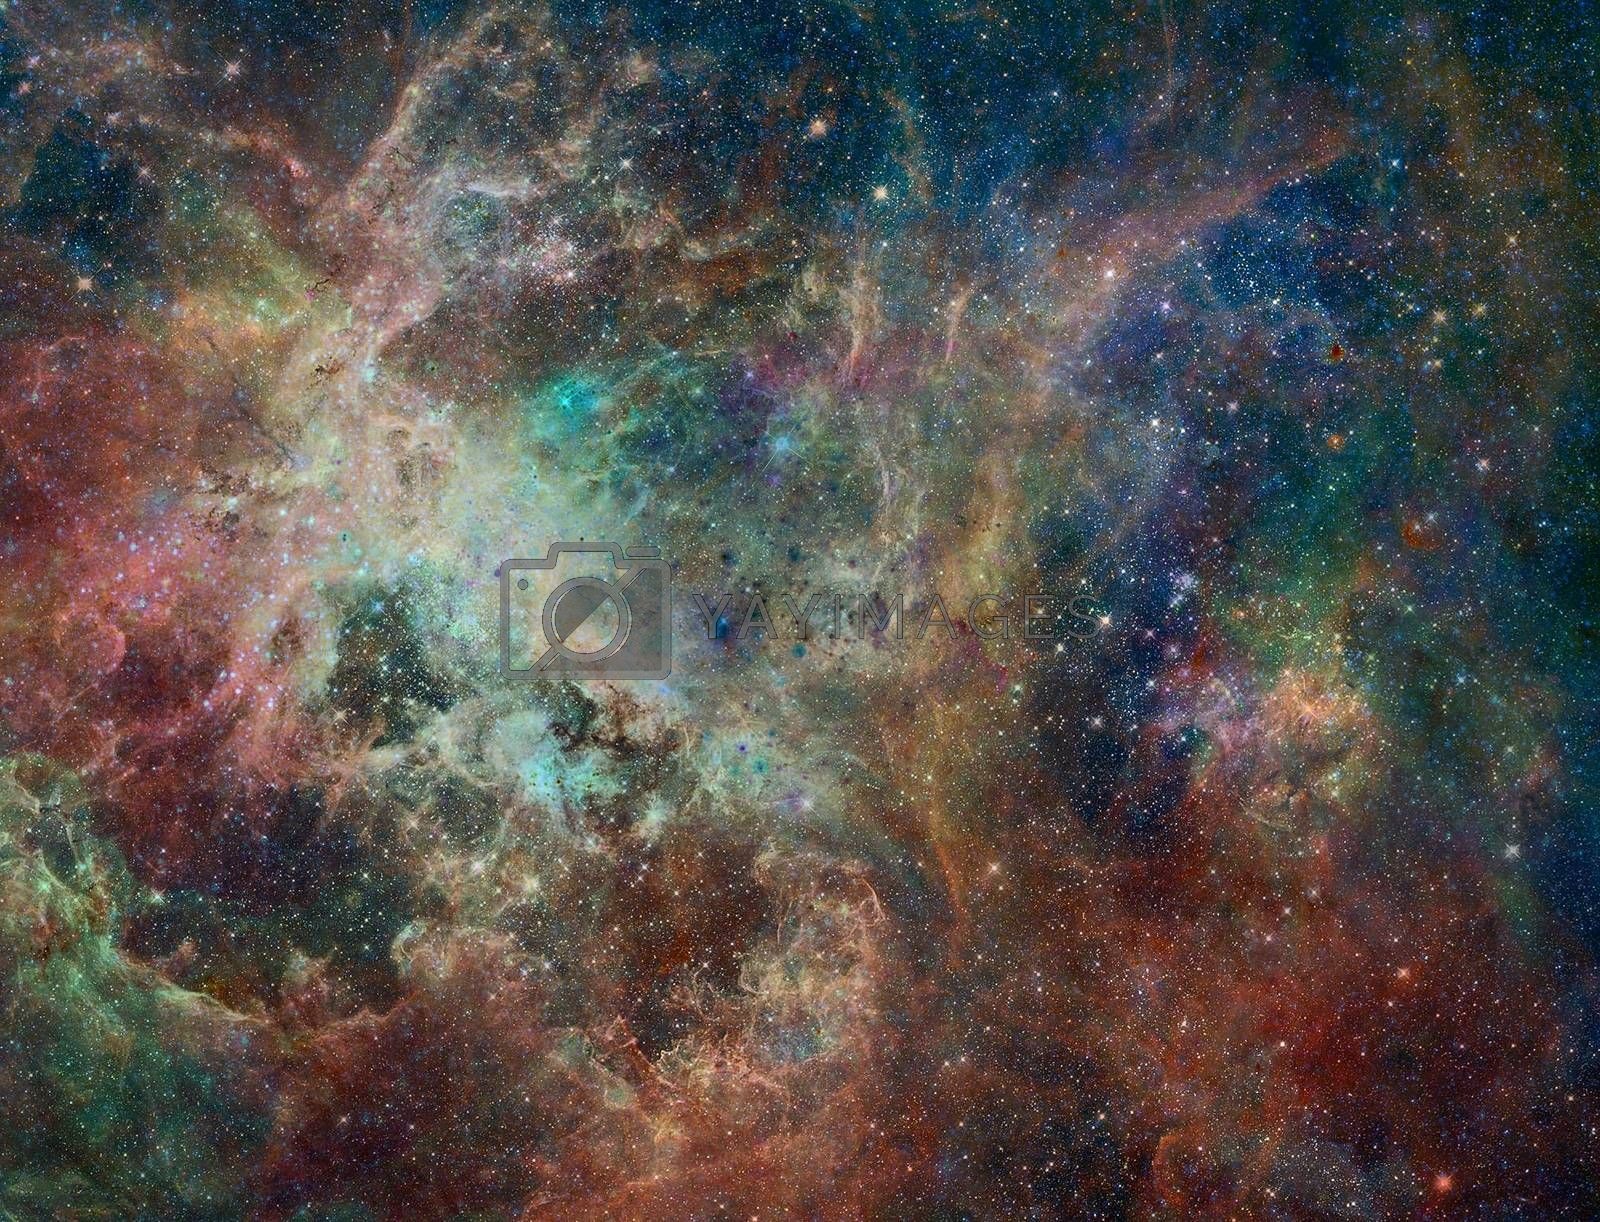 This image from ESA's Herschel Space Observatory shows of a portion of the Rosette nebula, a stellar nursery about 5,000 light-years from Earth in the Monoceros, or Unicorn, constellation.